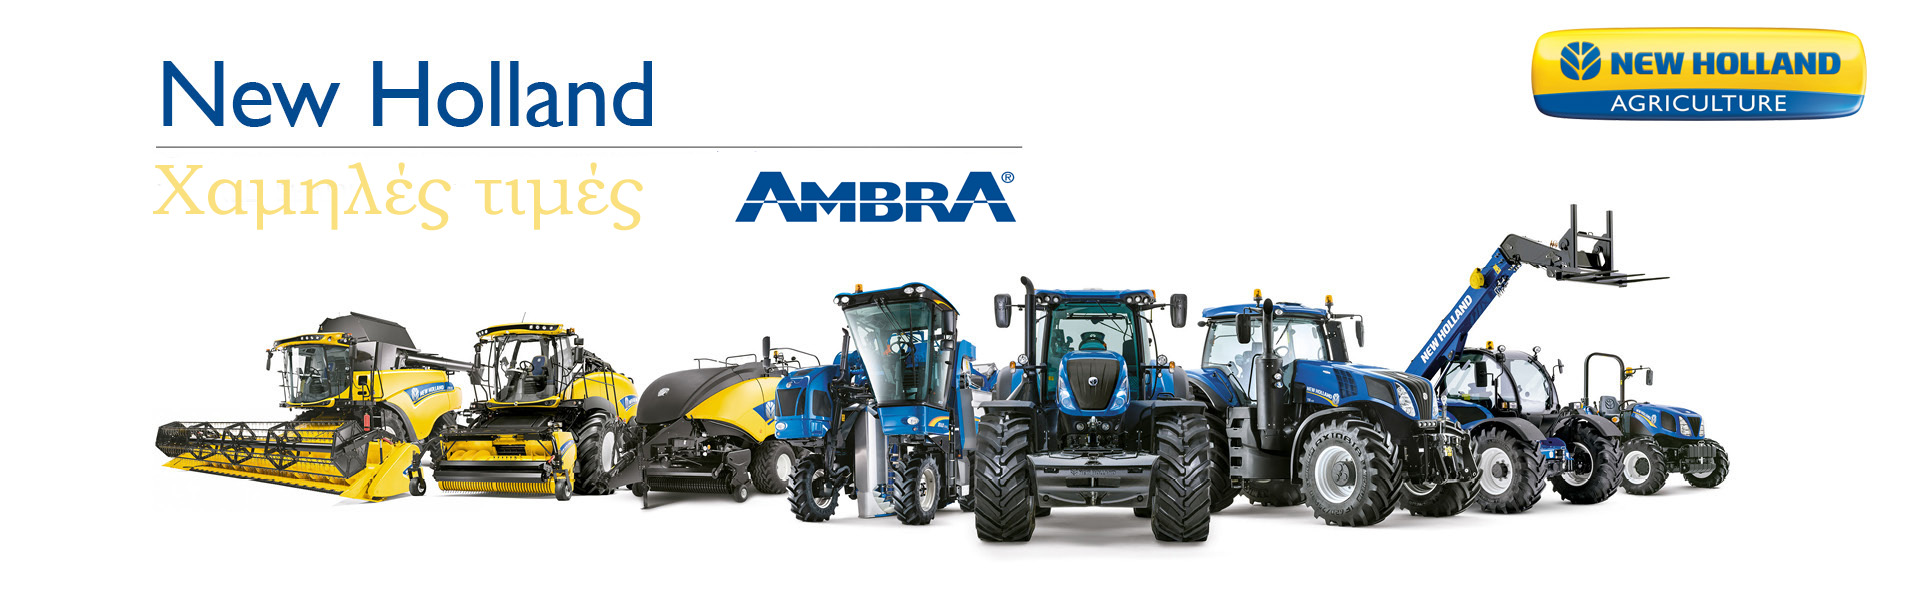 Ambra New Holland